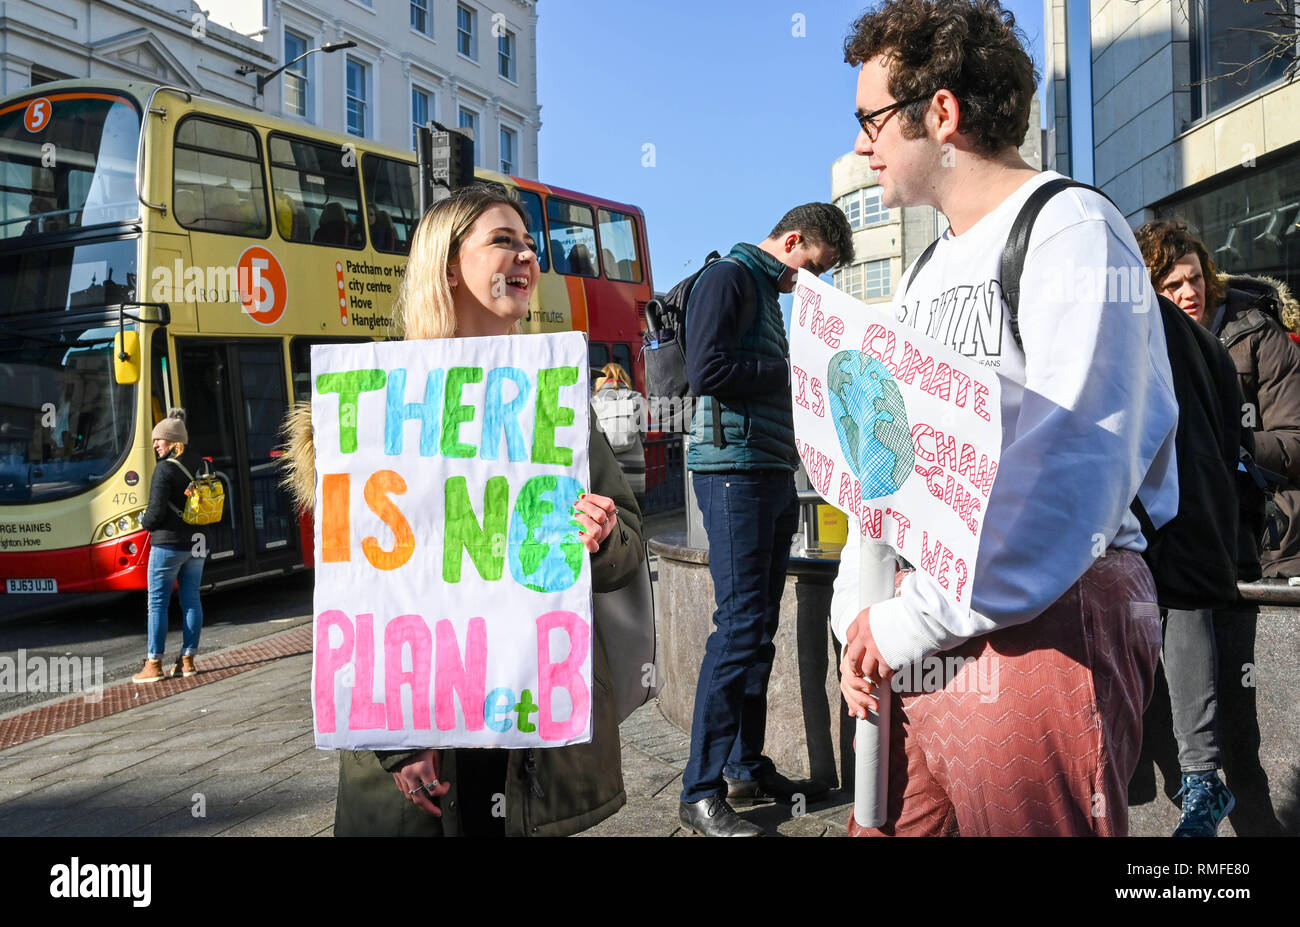 Brighton, UK. 15th Feb, 2019. Students start to gather in Brighton to take part in the Youth Strike 4 Climate protest today as part of a coordinated day of national action. Credit: Simon Dack/Alamy Live News Stock Photo